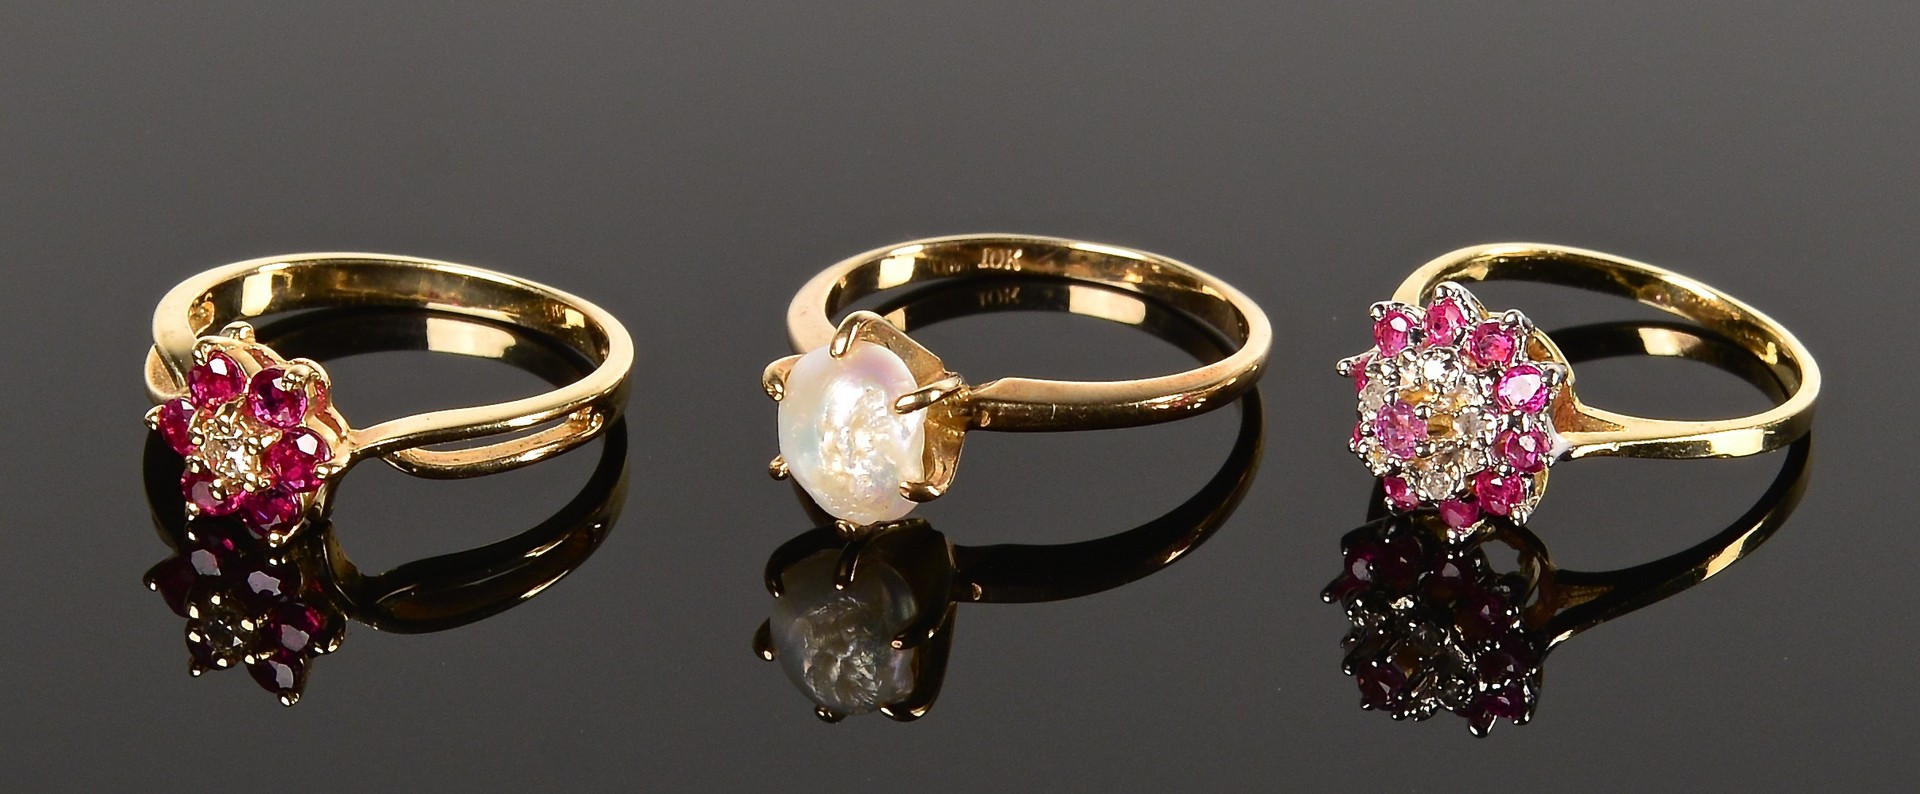 Lot 360: Group of gold jewelry incl dia studs